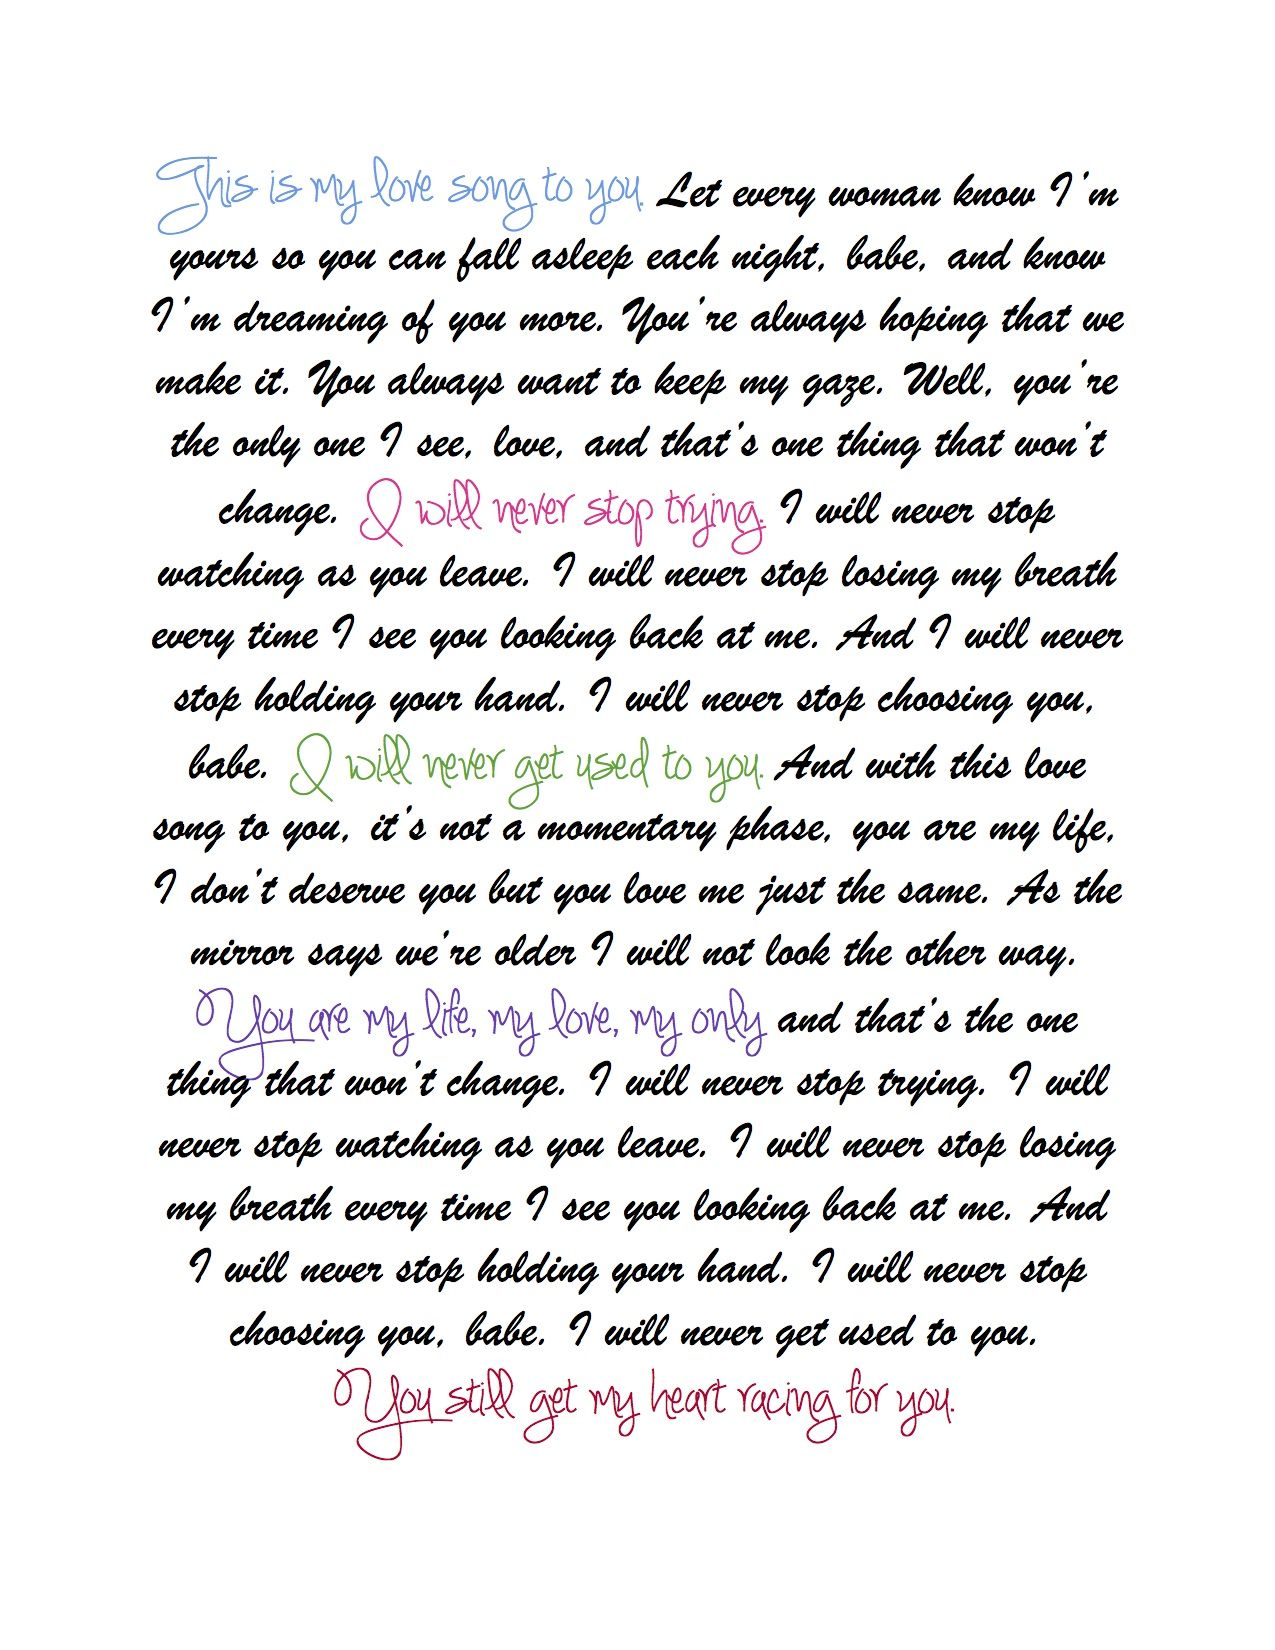 Never Stop Wedding Version Safetysuit My All Time Favorite Song Hoping Someday Someone Will Feel This Way About Me Lyrics To Live By Wedding Songs Songs